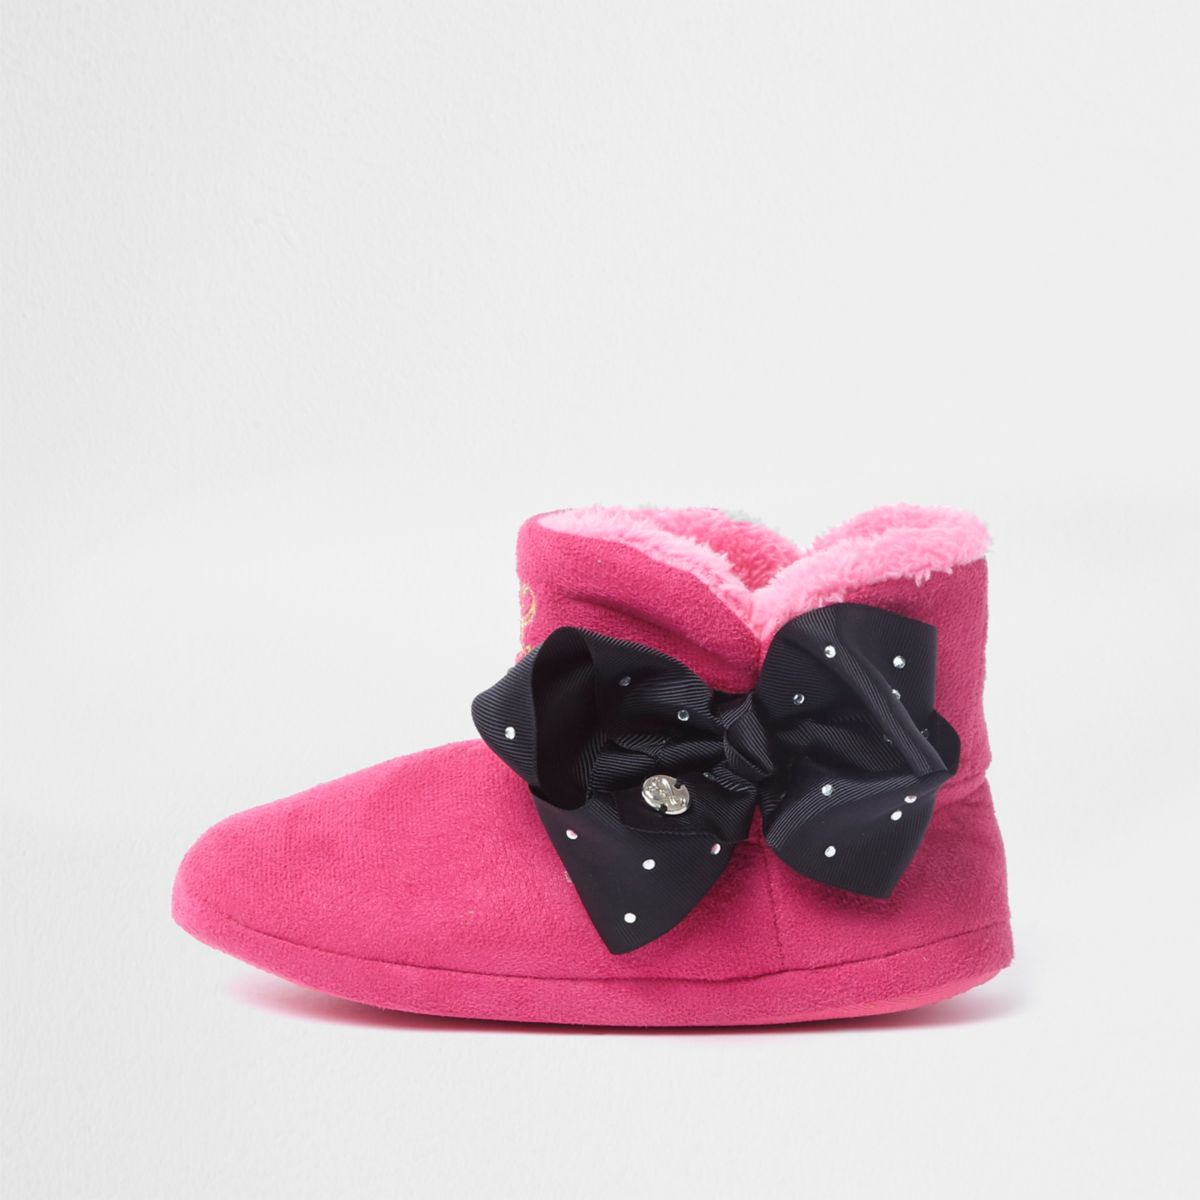 Girls pink JoJo Bows boot slippers